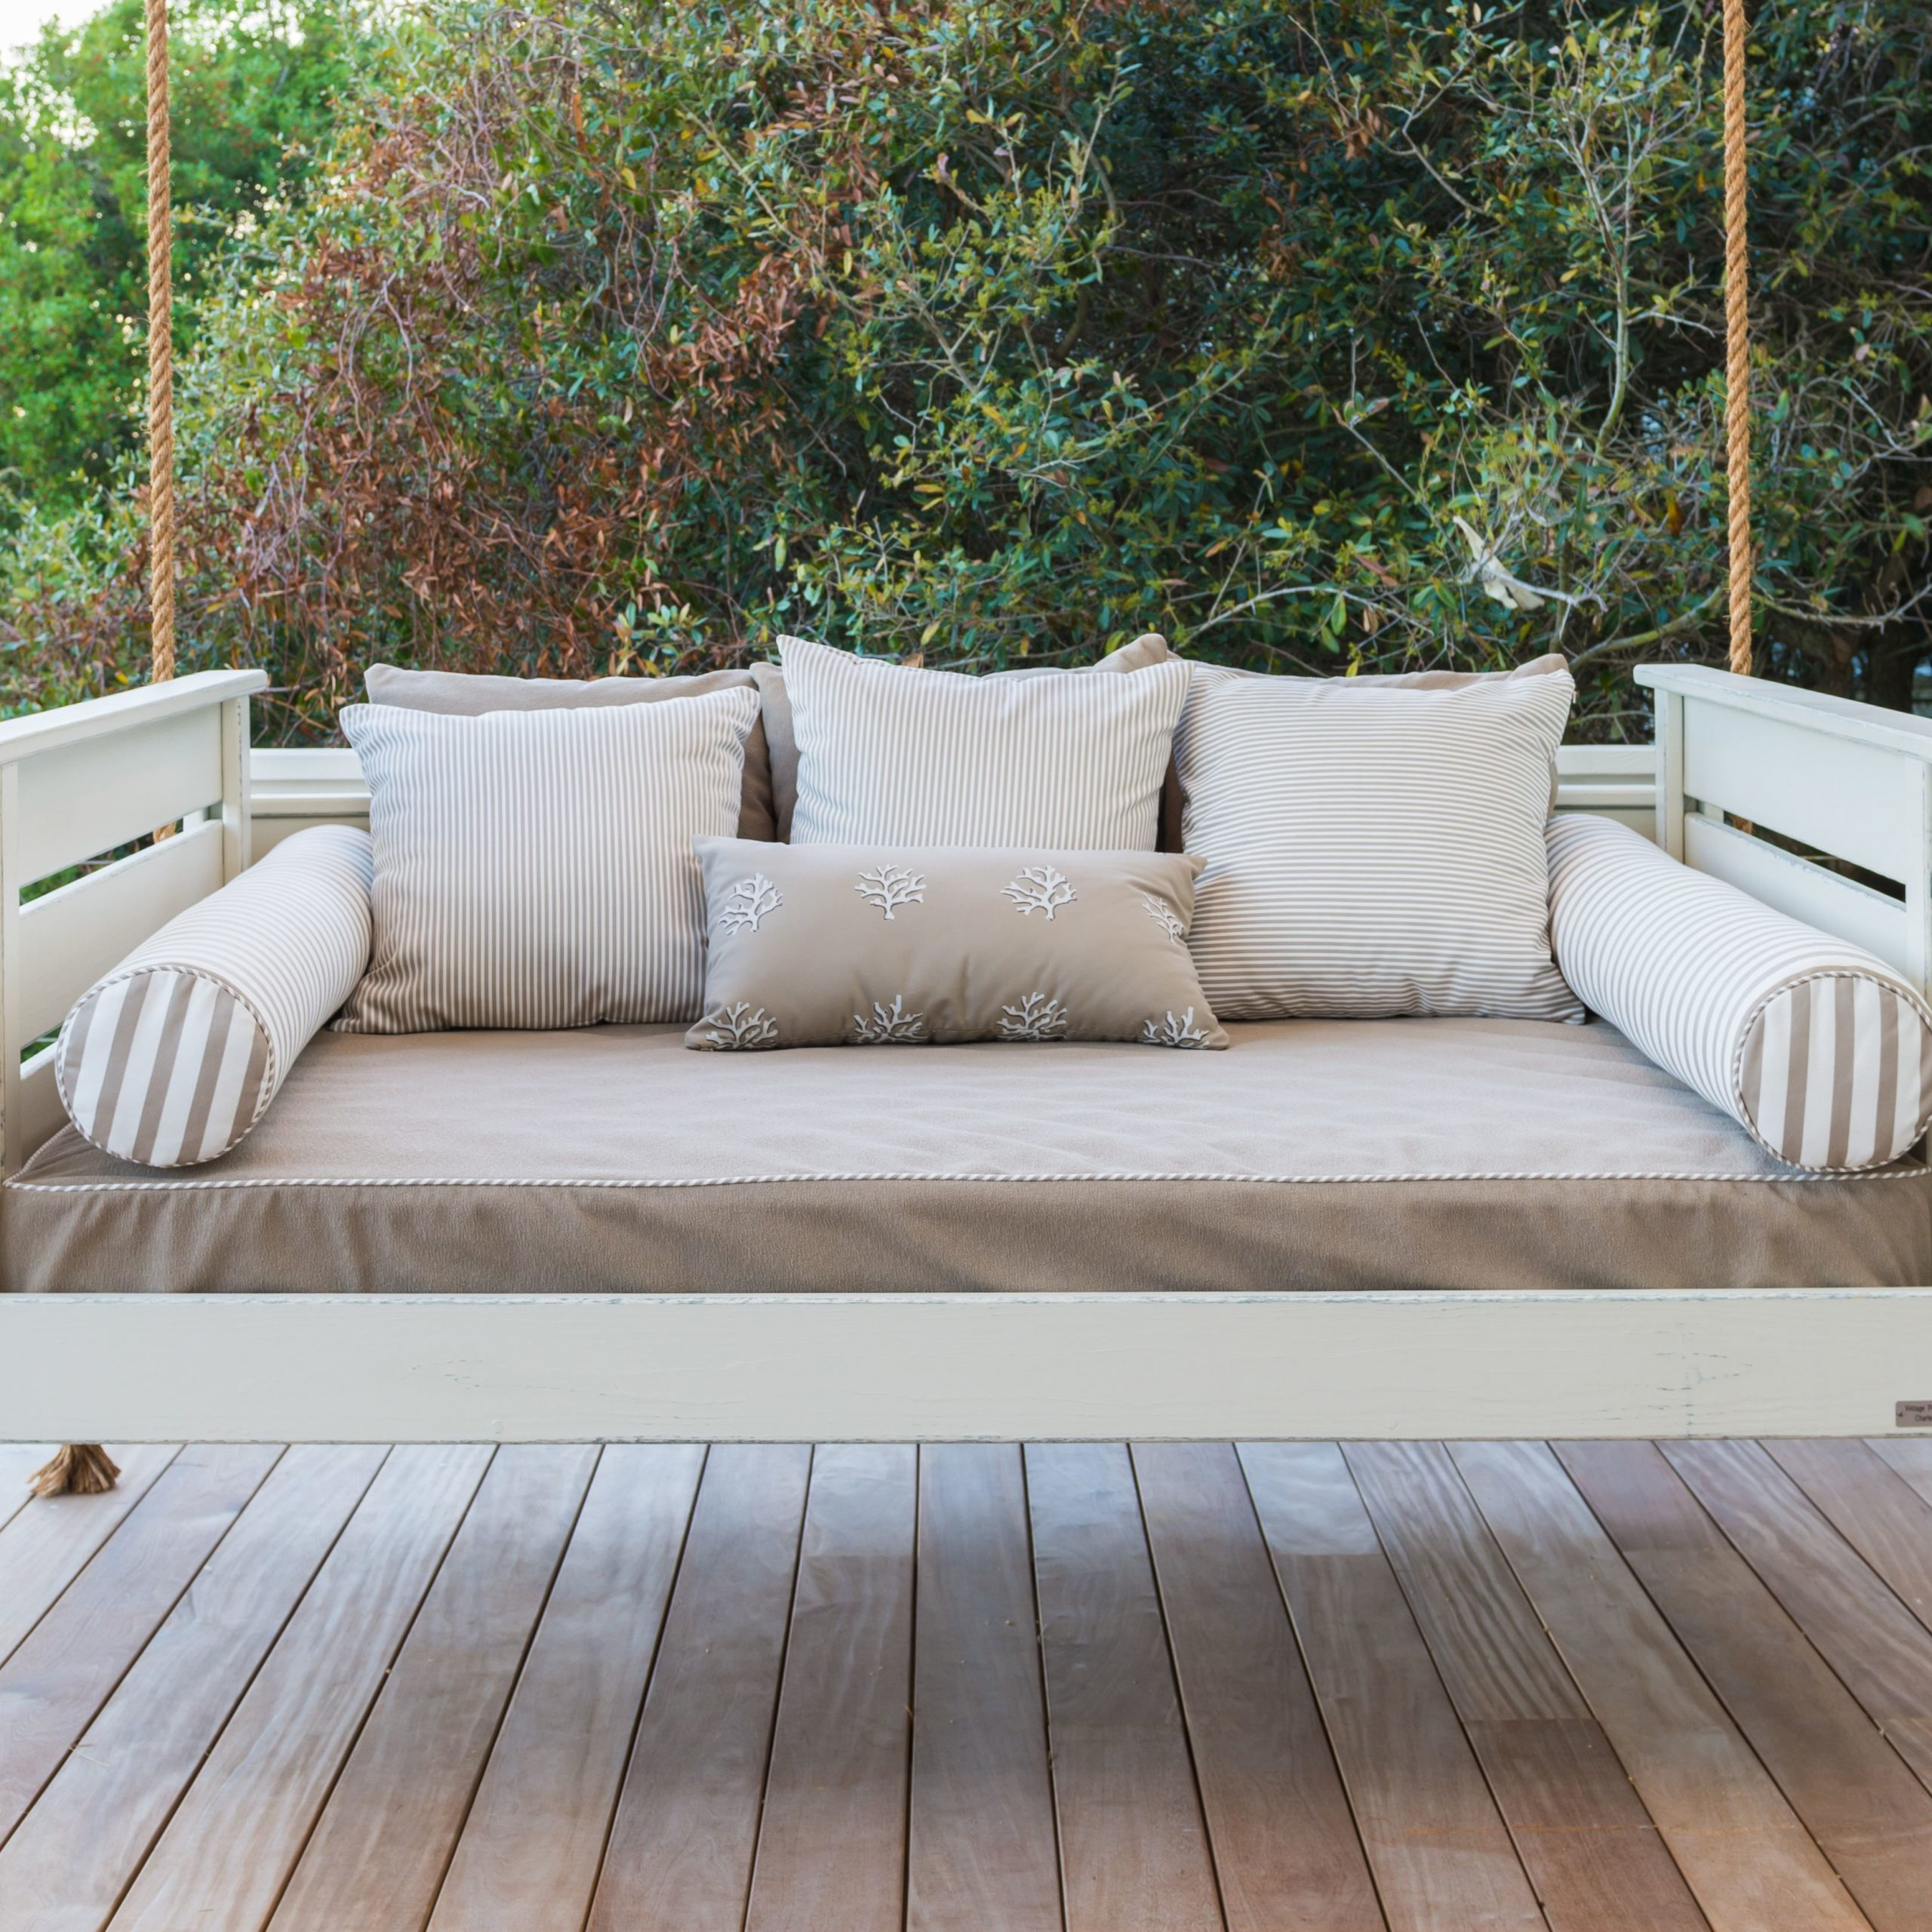 Porch Swing Inspiration For Free Standing Porch Swing Pertaining To Hardwood Hanging Porch Swings With Stand (View 8 of 25)